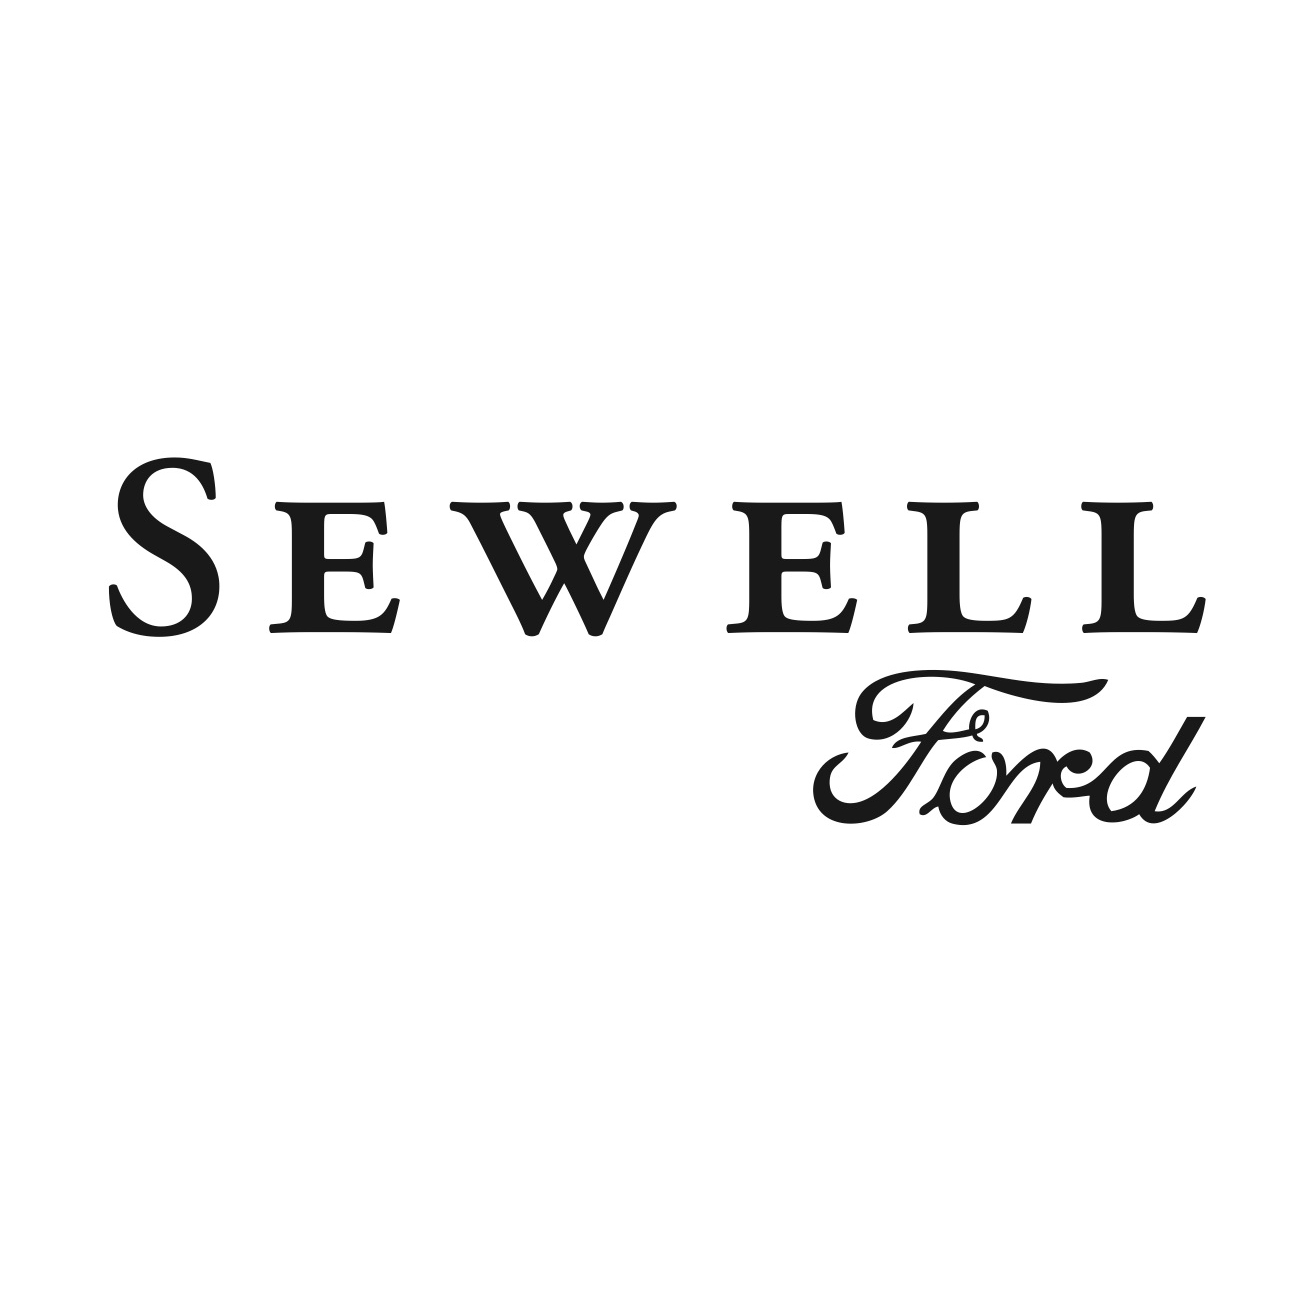 Sewell Ford Odessa >> Retail - Automobiles, new and used Business Directory – Odessa, Texas - Page 1